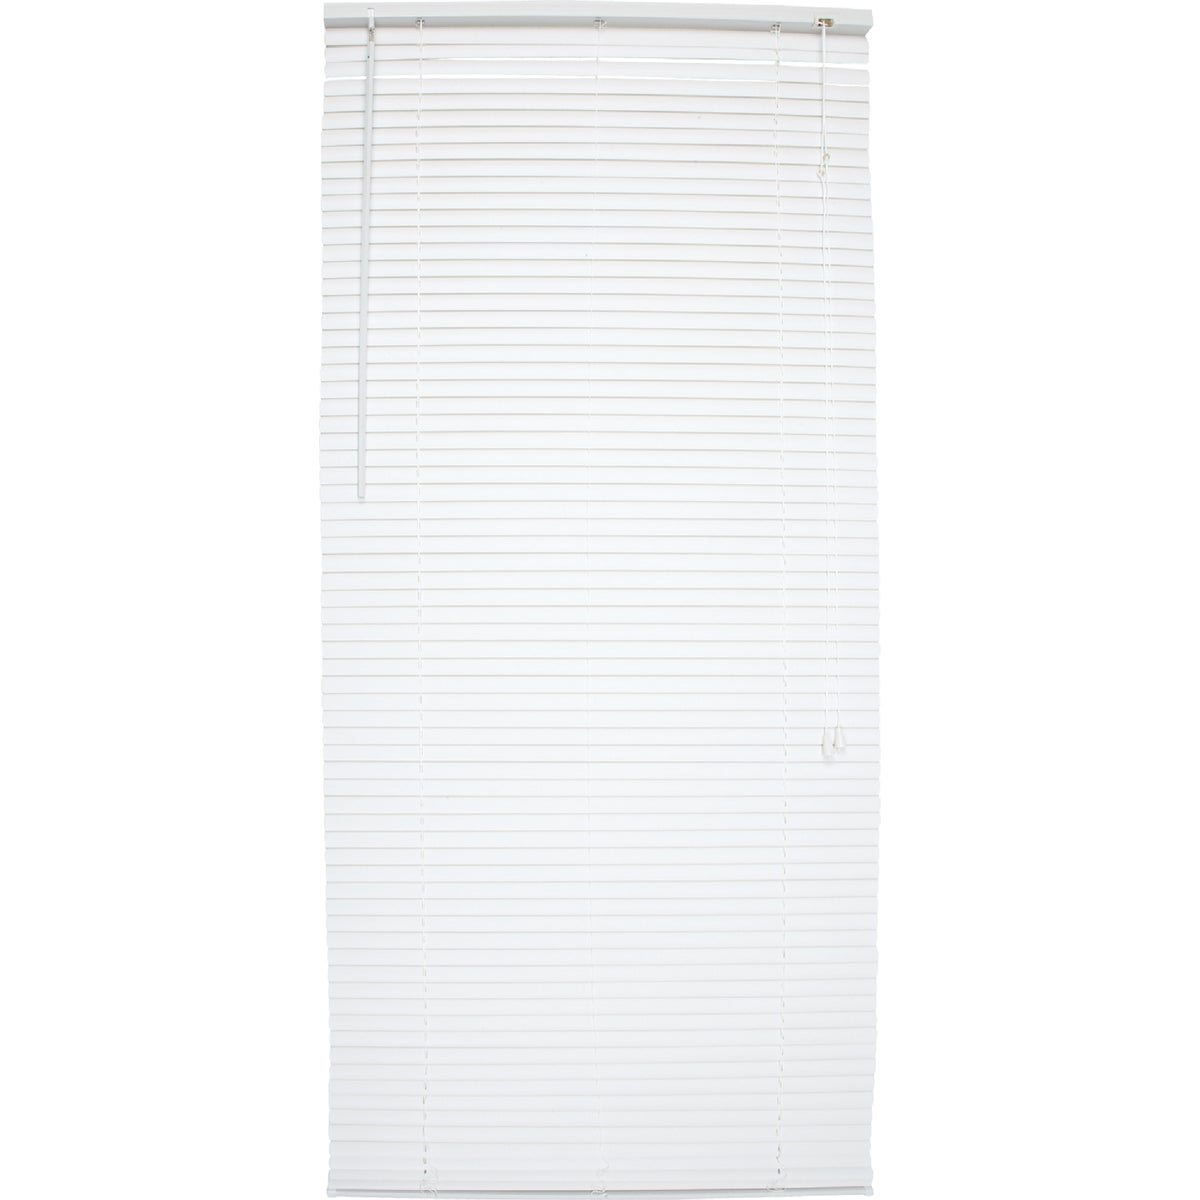 54X64 WHITE MINI BLIND - 616087 by Lotus Wind Incom